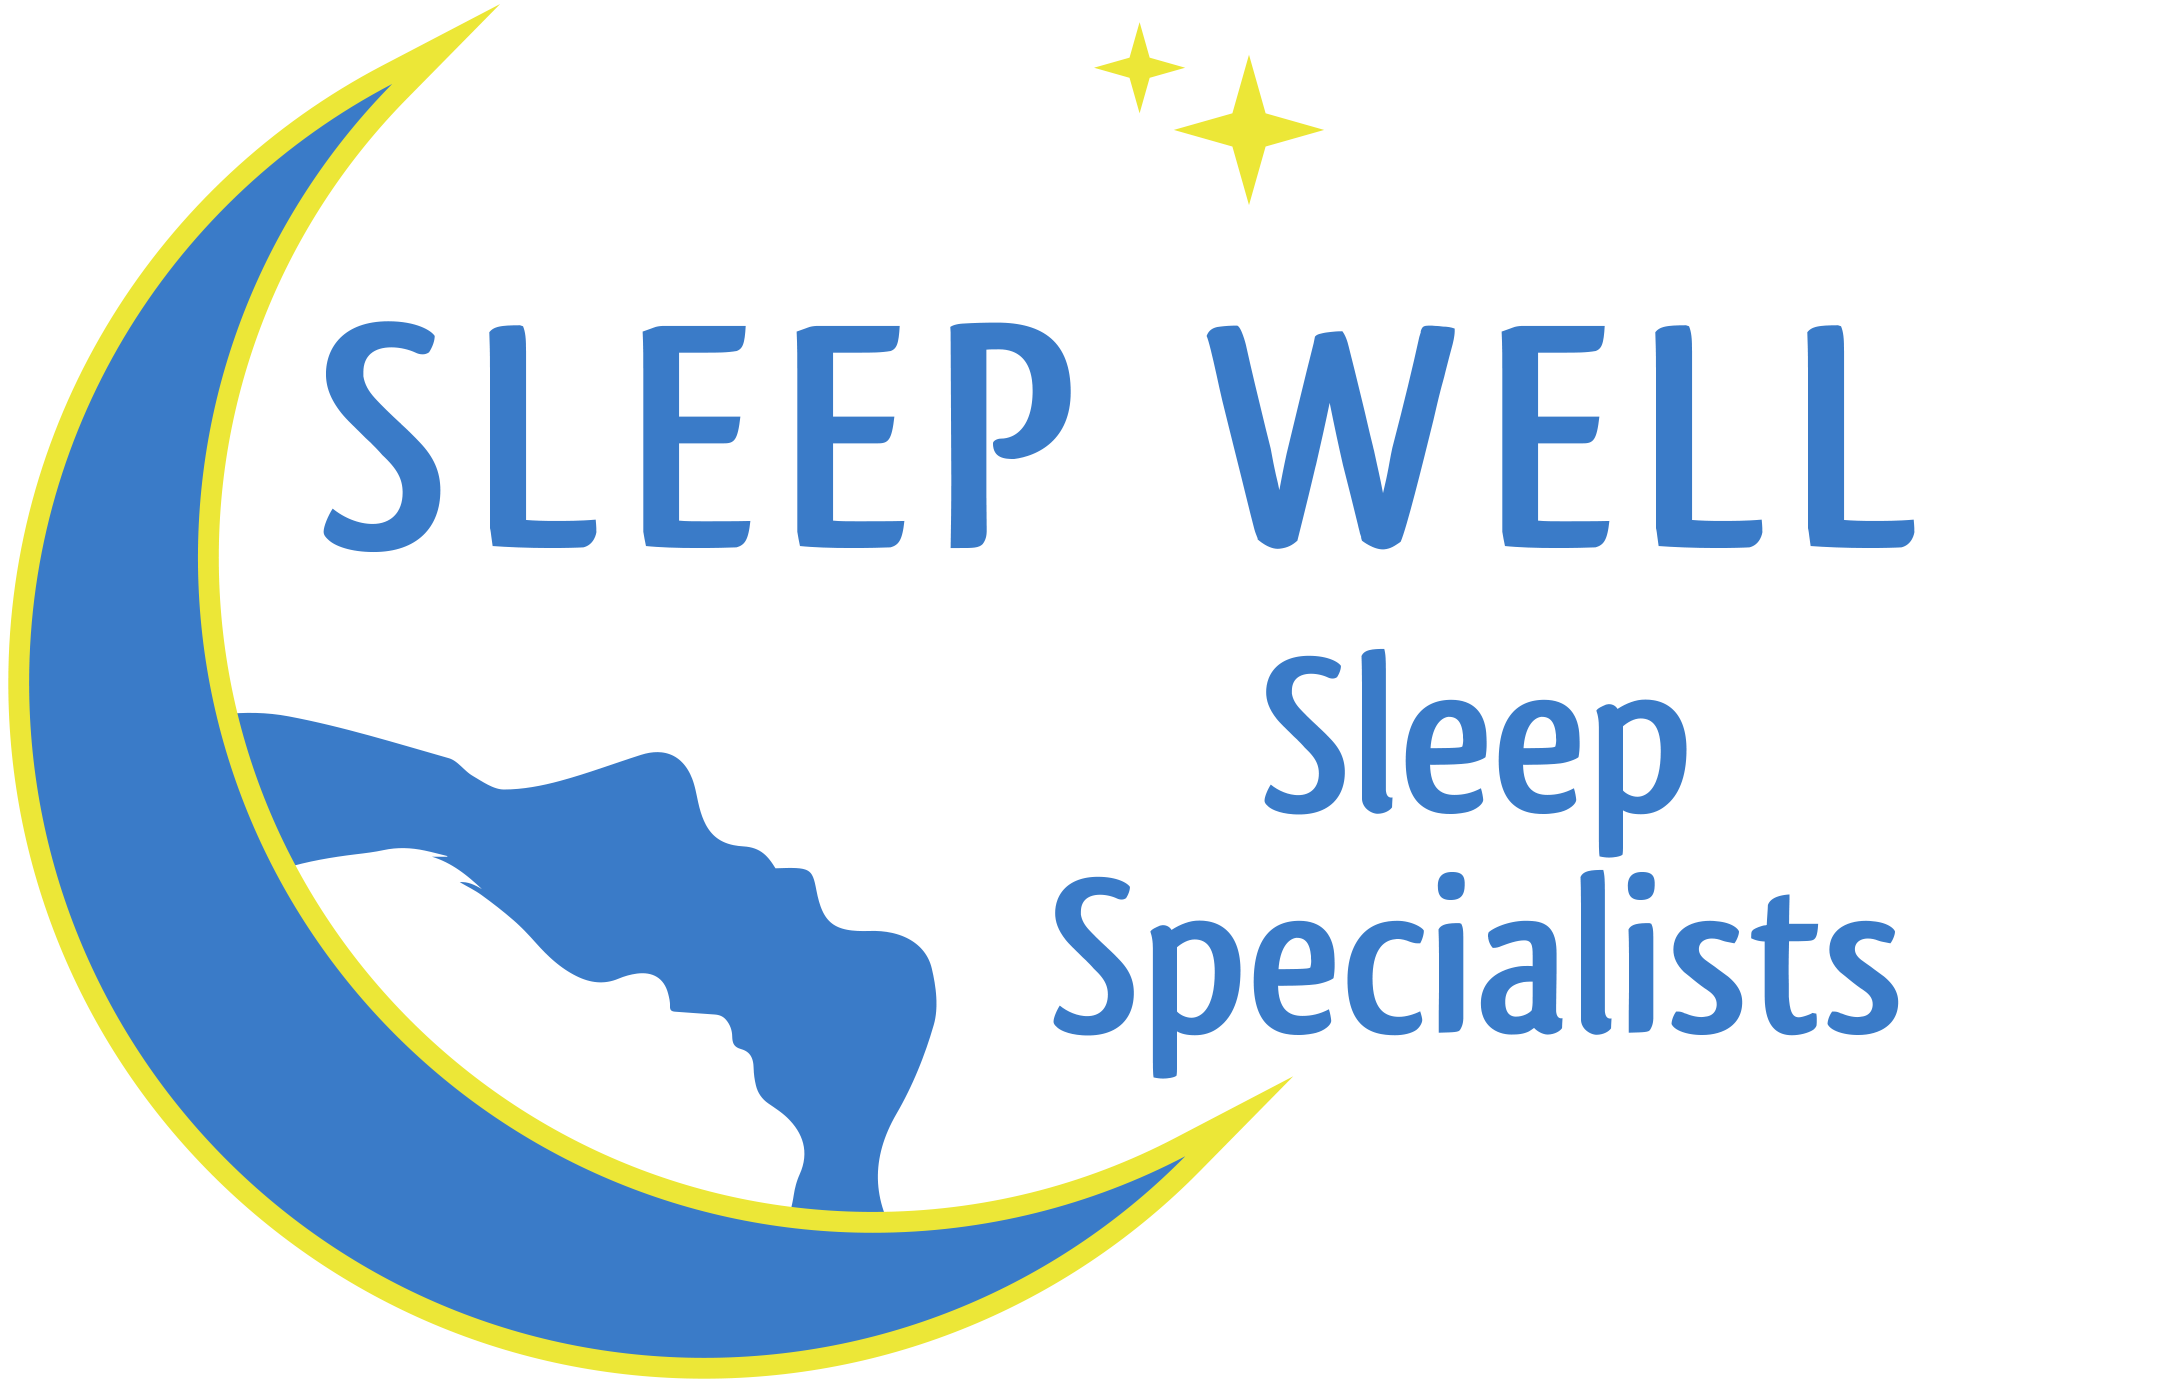 Sleep Well Sleep Specialists - Customized Sleep Support and Sleep Plans for Babies, Children, and Adults